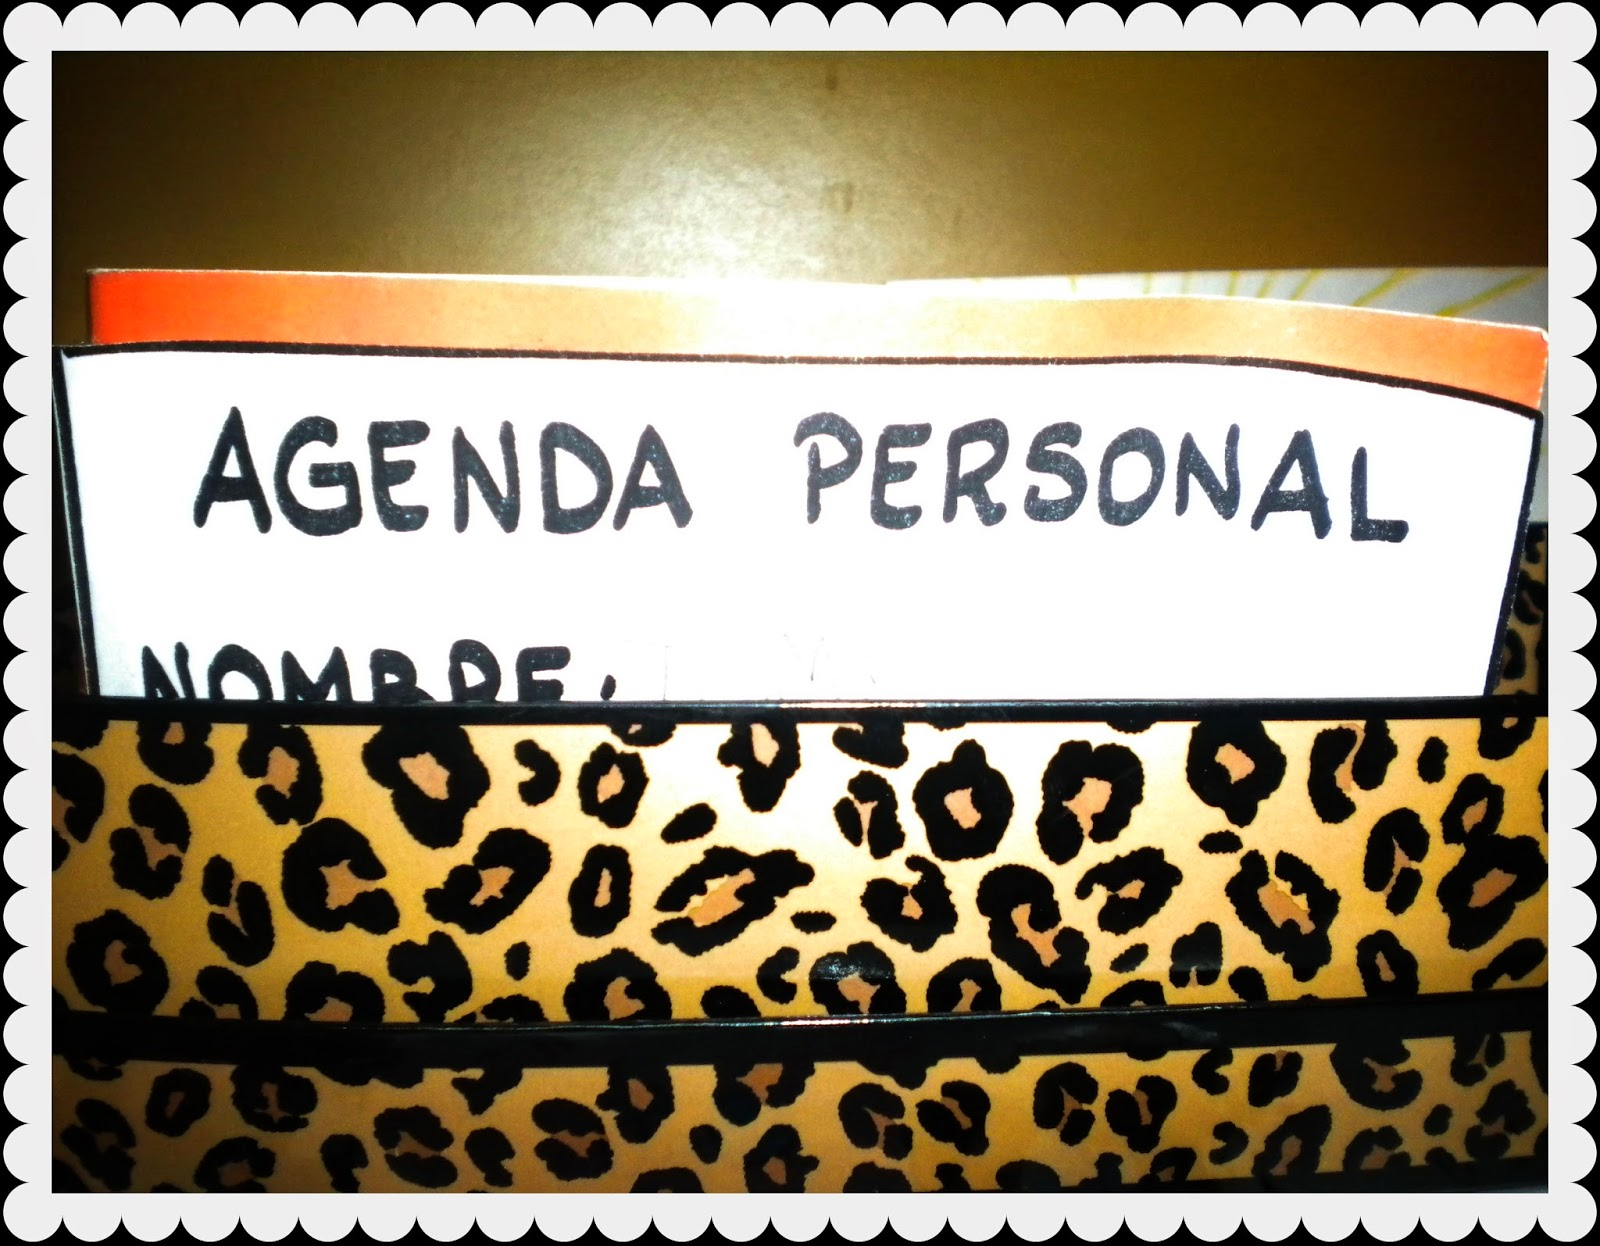 agenda personals 100% free agenda chat rooms at mingle2com join the hottest agenda chatrooms online mingle2's agenda chat rooms are full of fun, sexy singles like you sign up for your free agenda chat account now and meet hundreds of nebraska singles online.